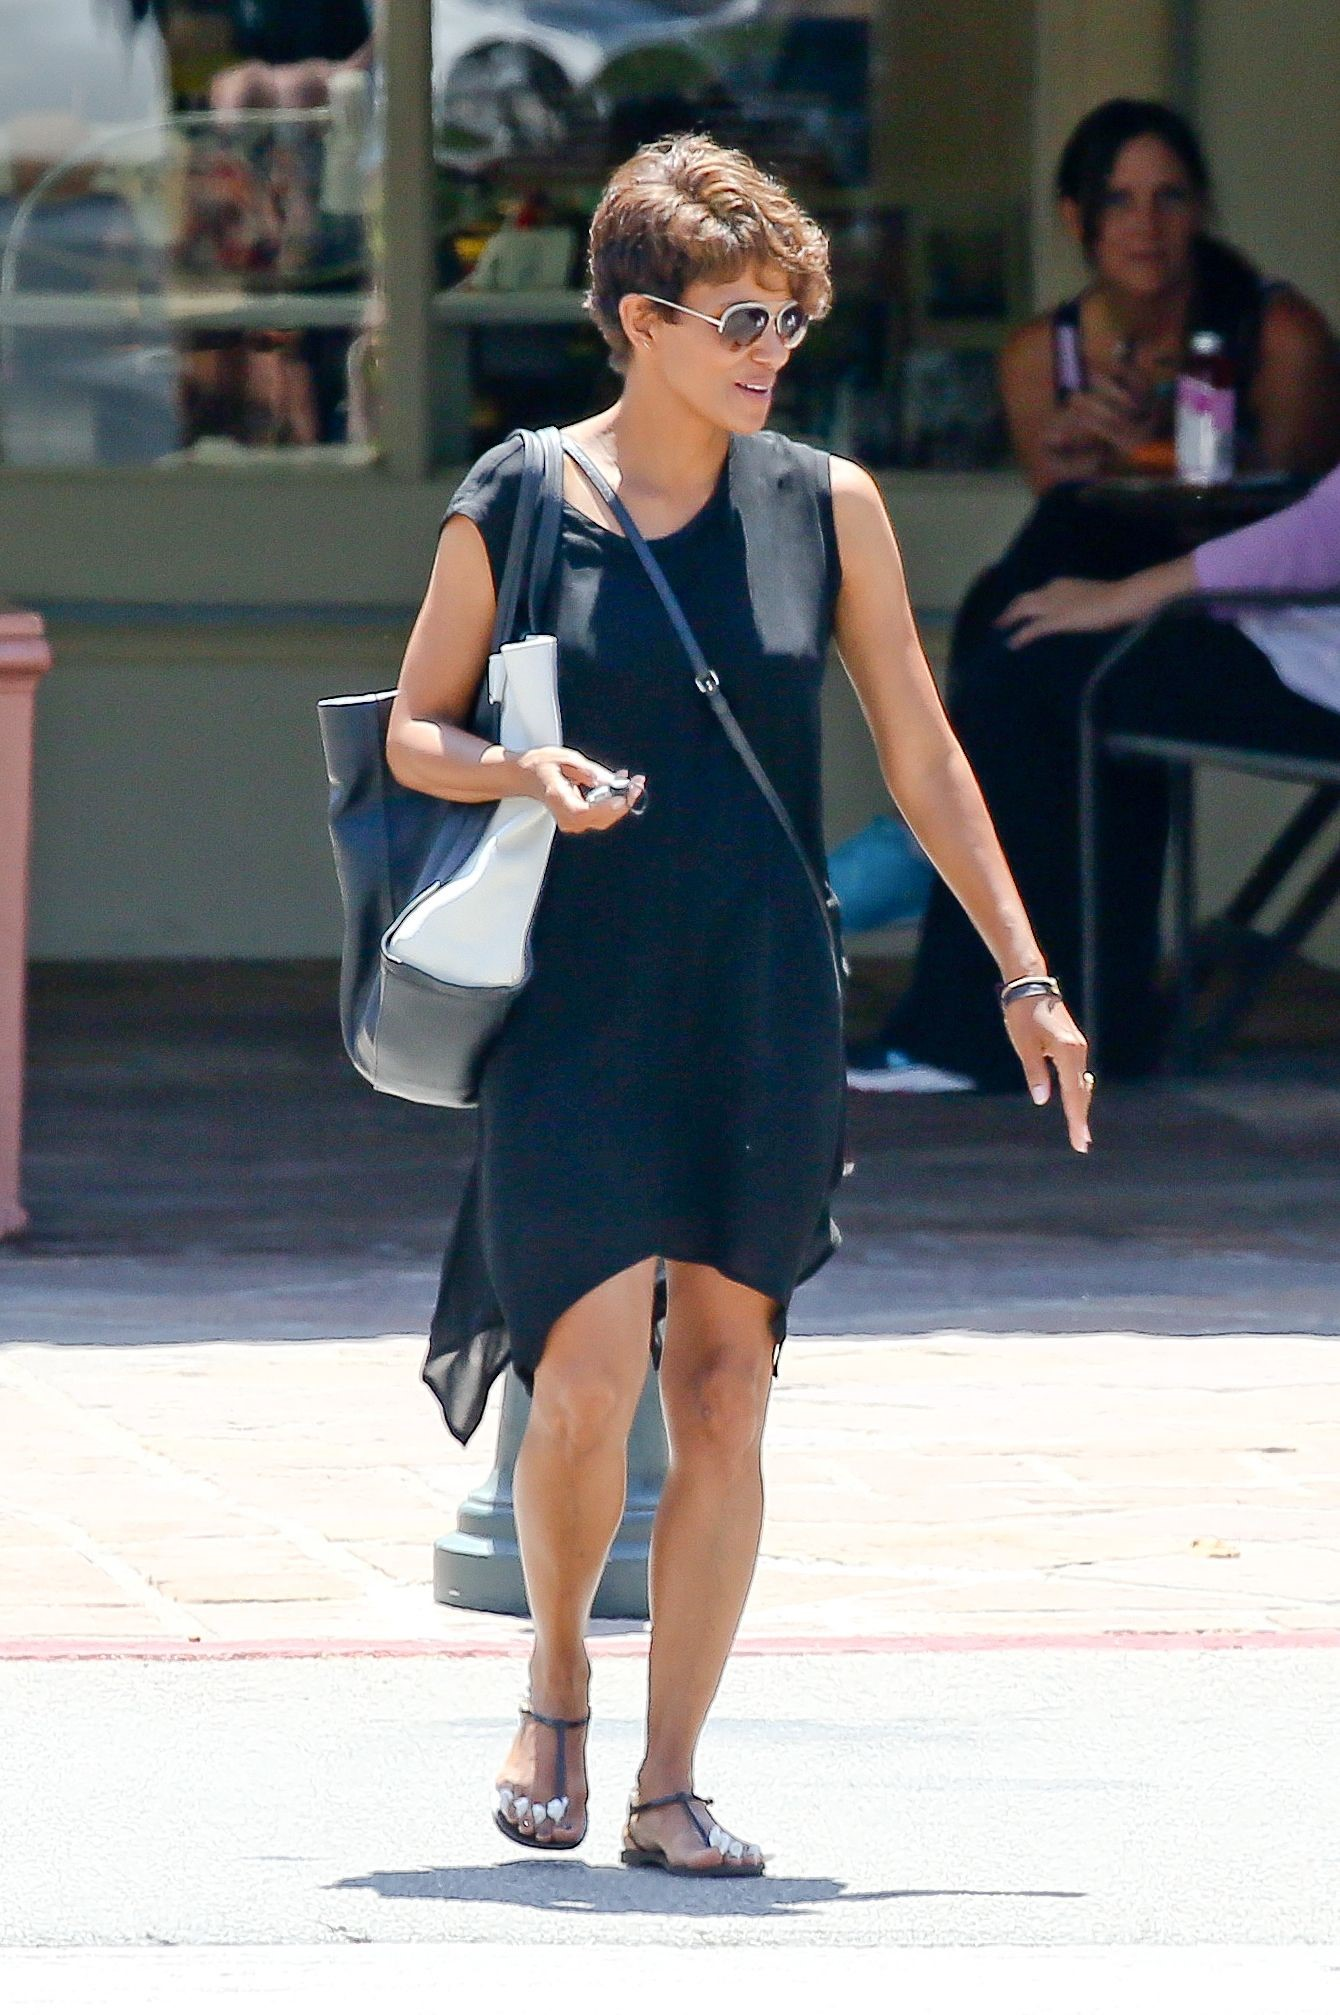 Halle Berry at local nail spa in Malibu August 12, 2014